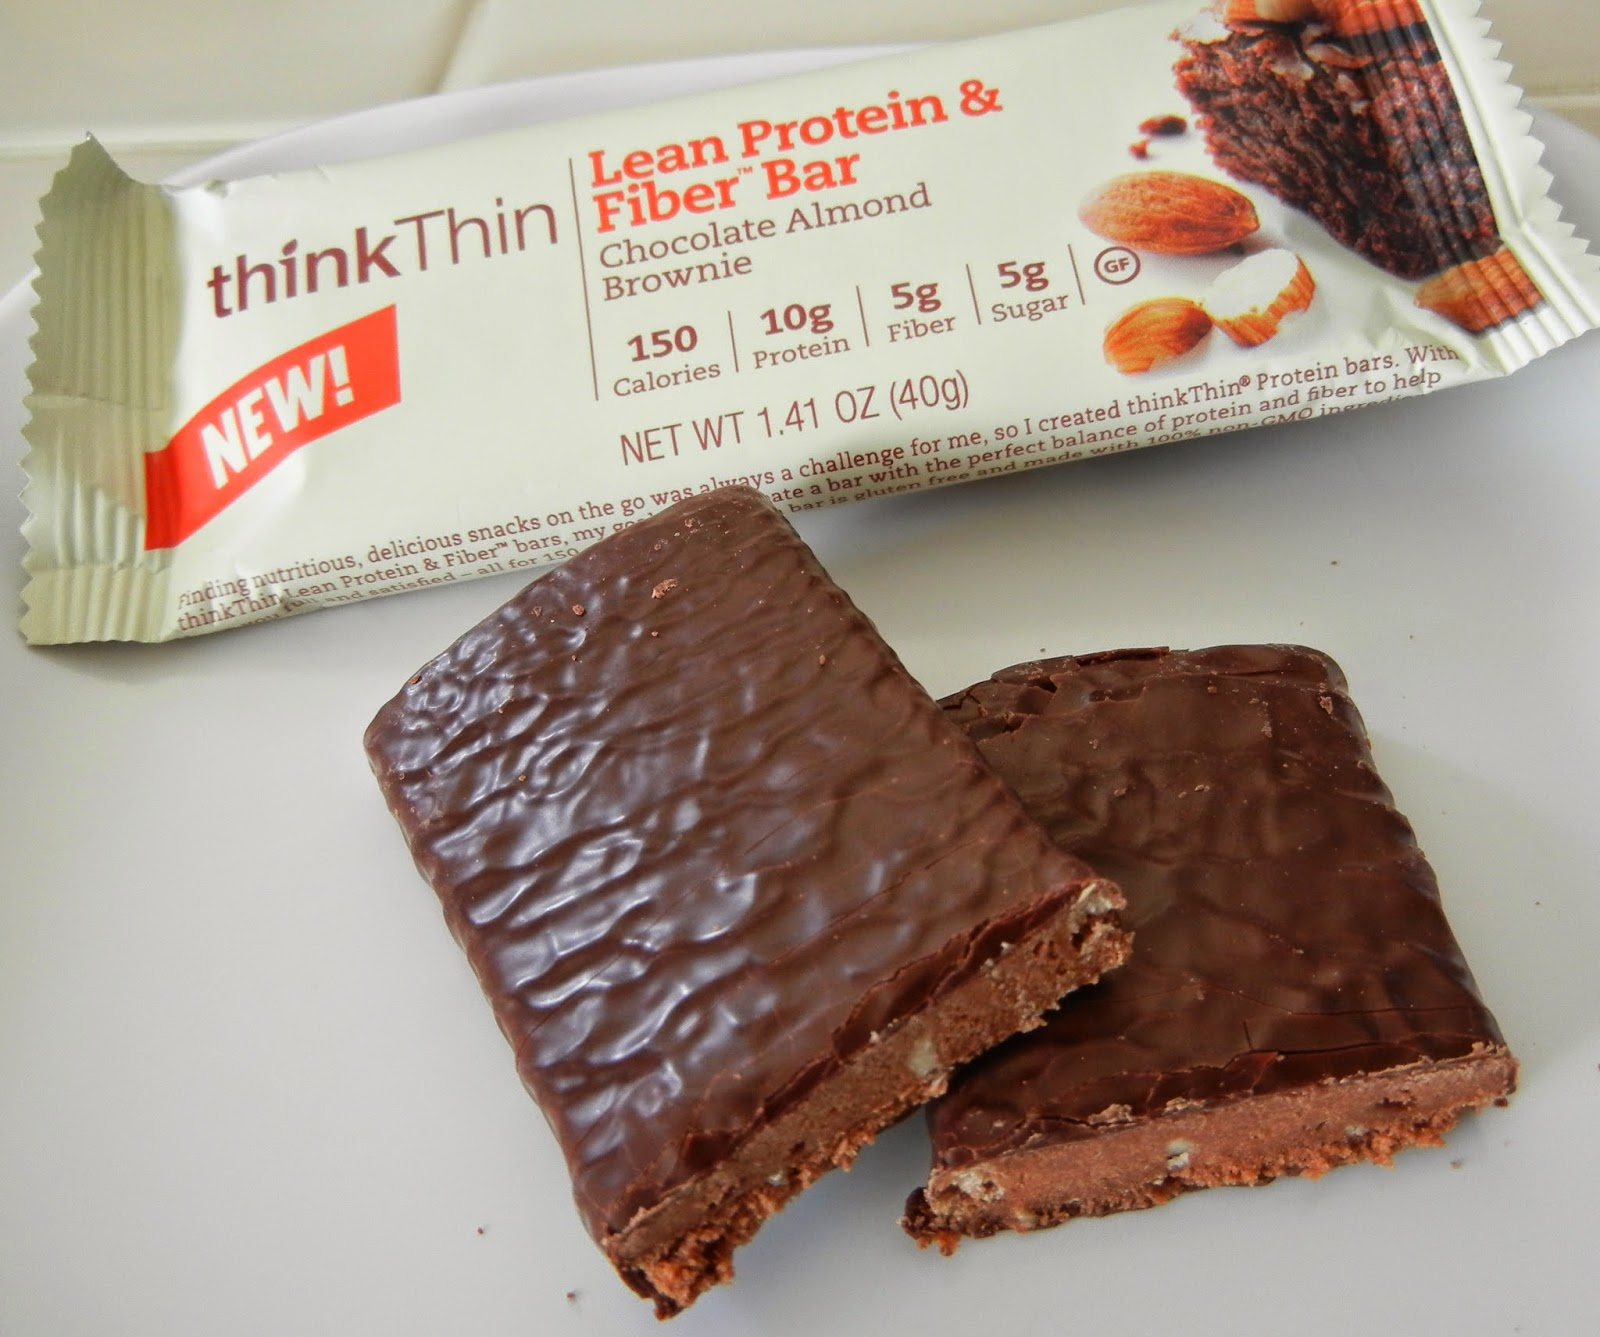 thinkThin+Bars+Lean+Protein+and+Fiber+Chocolate+Almond+Brownie+Bar Weight Loss Recipes thinkThin New Protein Bars Review and Giveaway